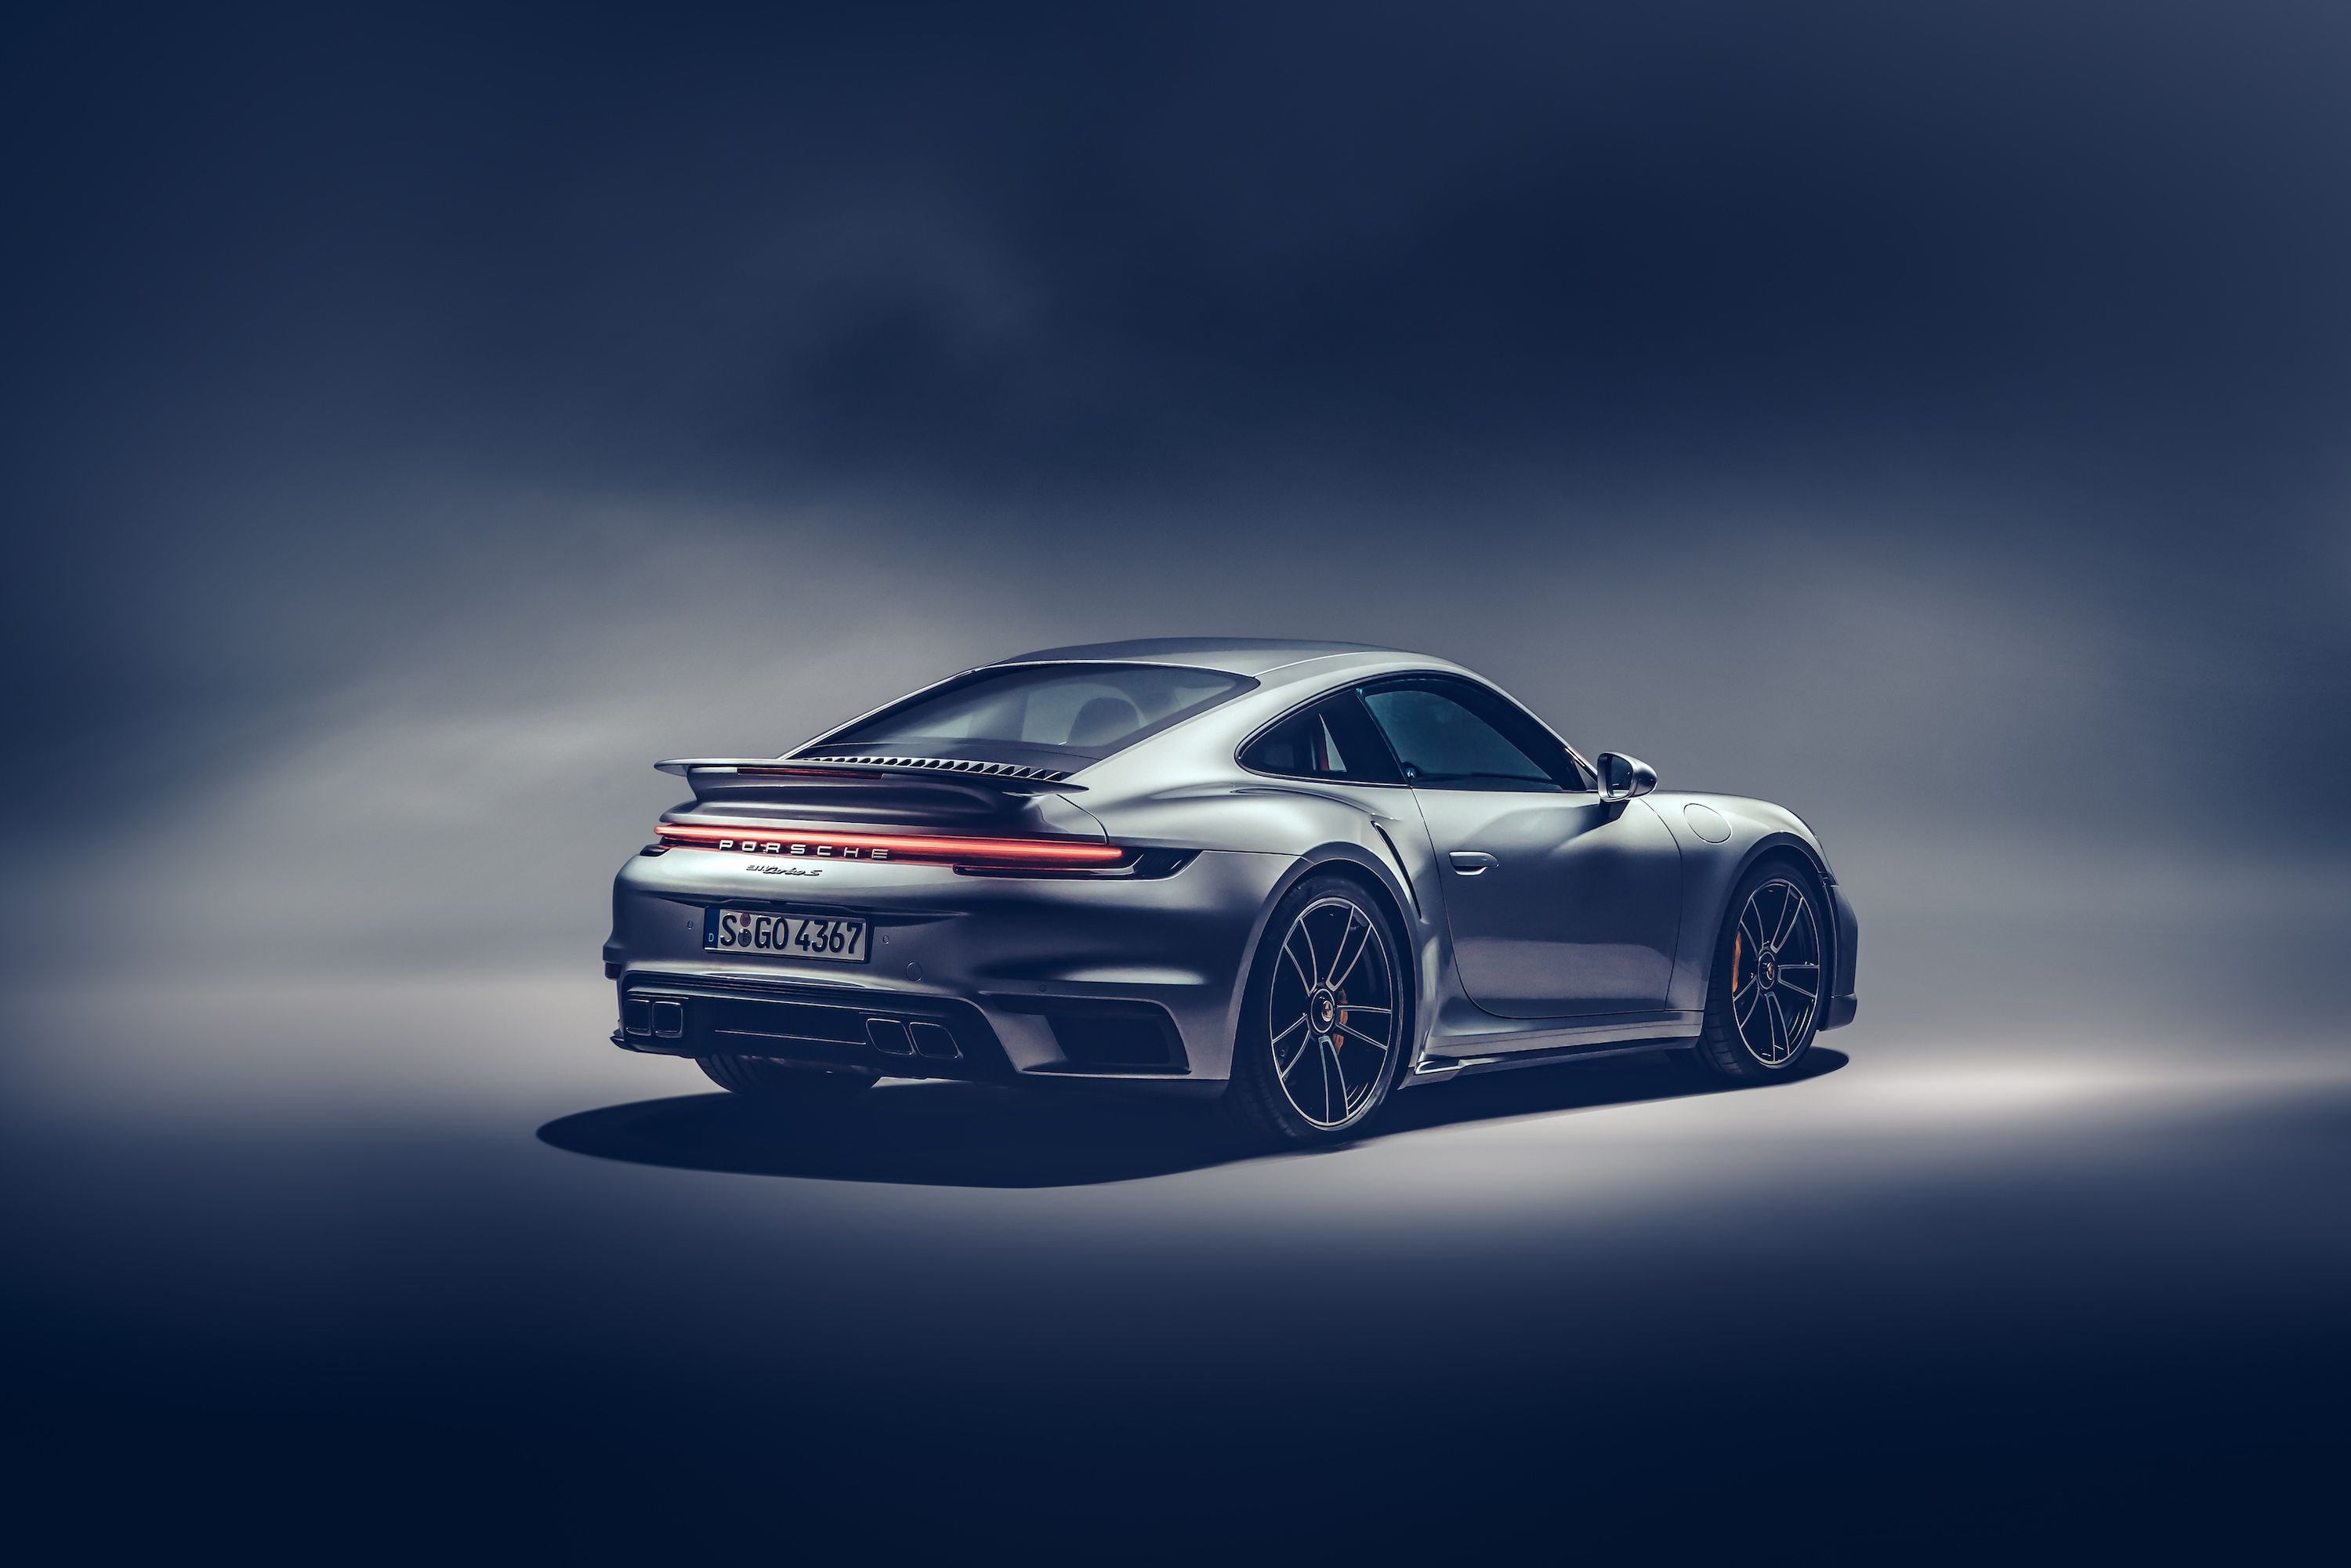 Why the 2021 Porsche 911 Turbo S Got Such a Big Power Boost